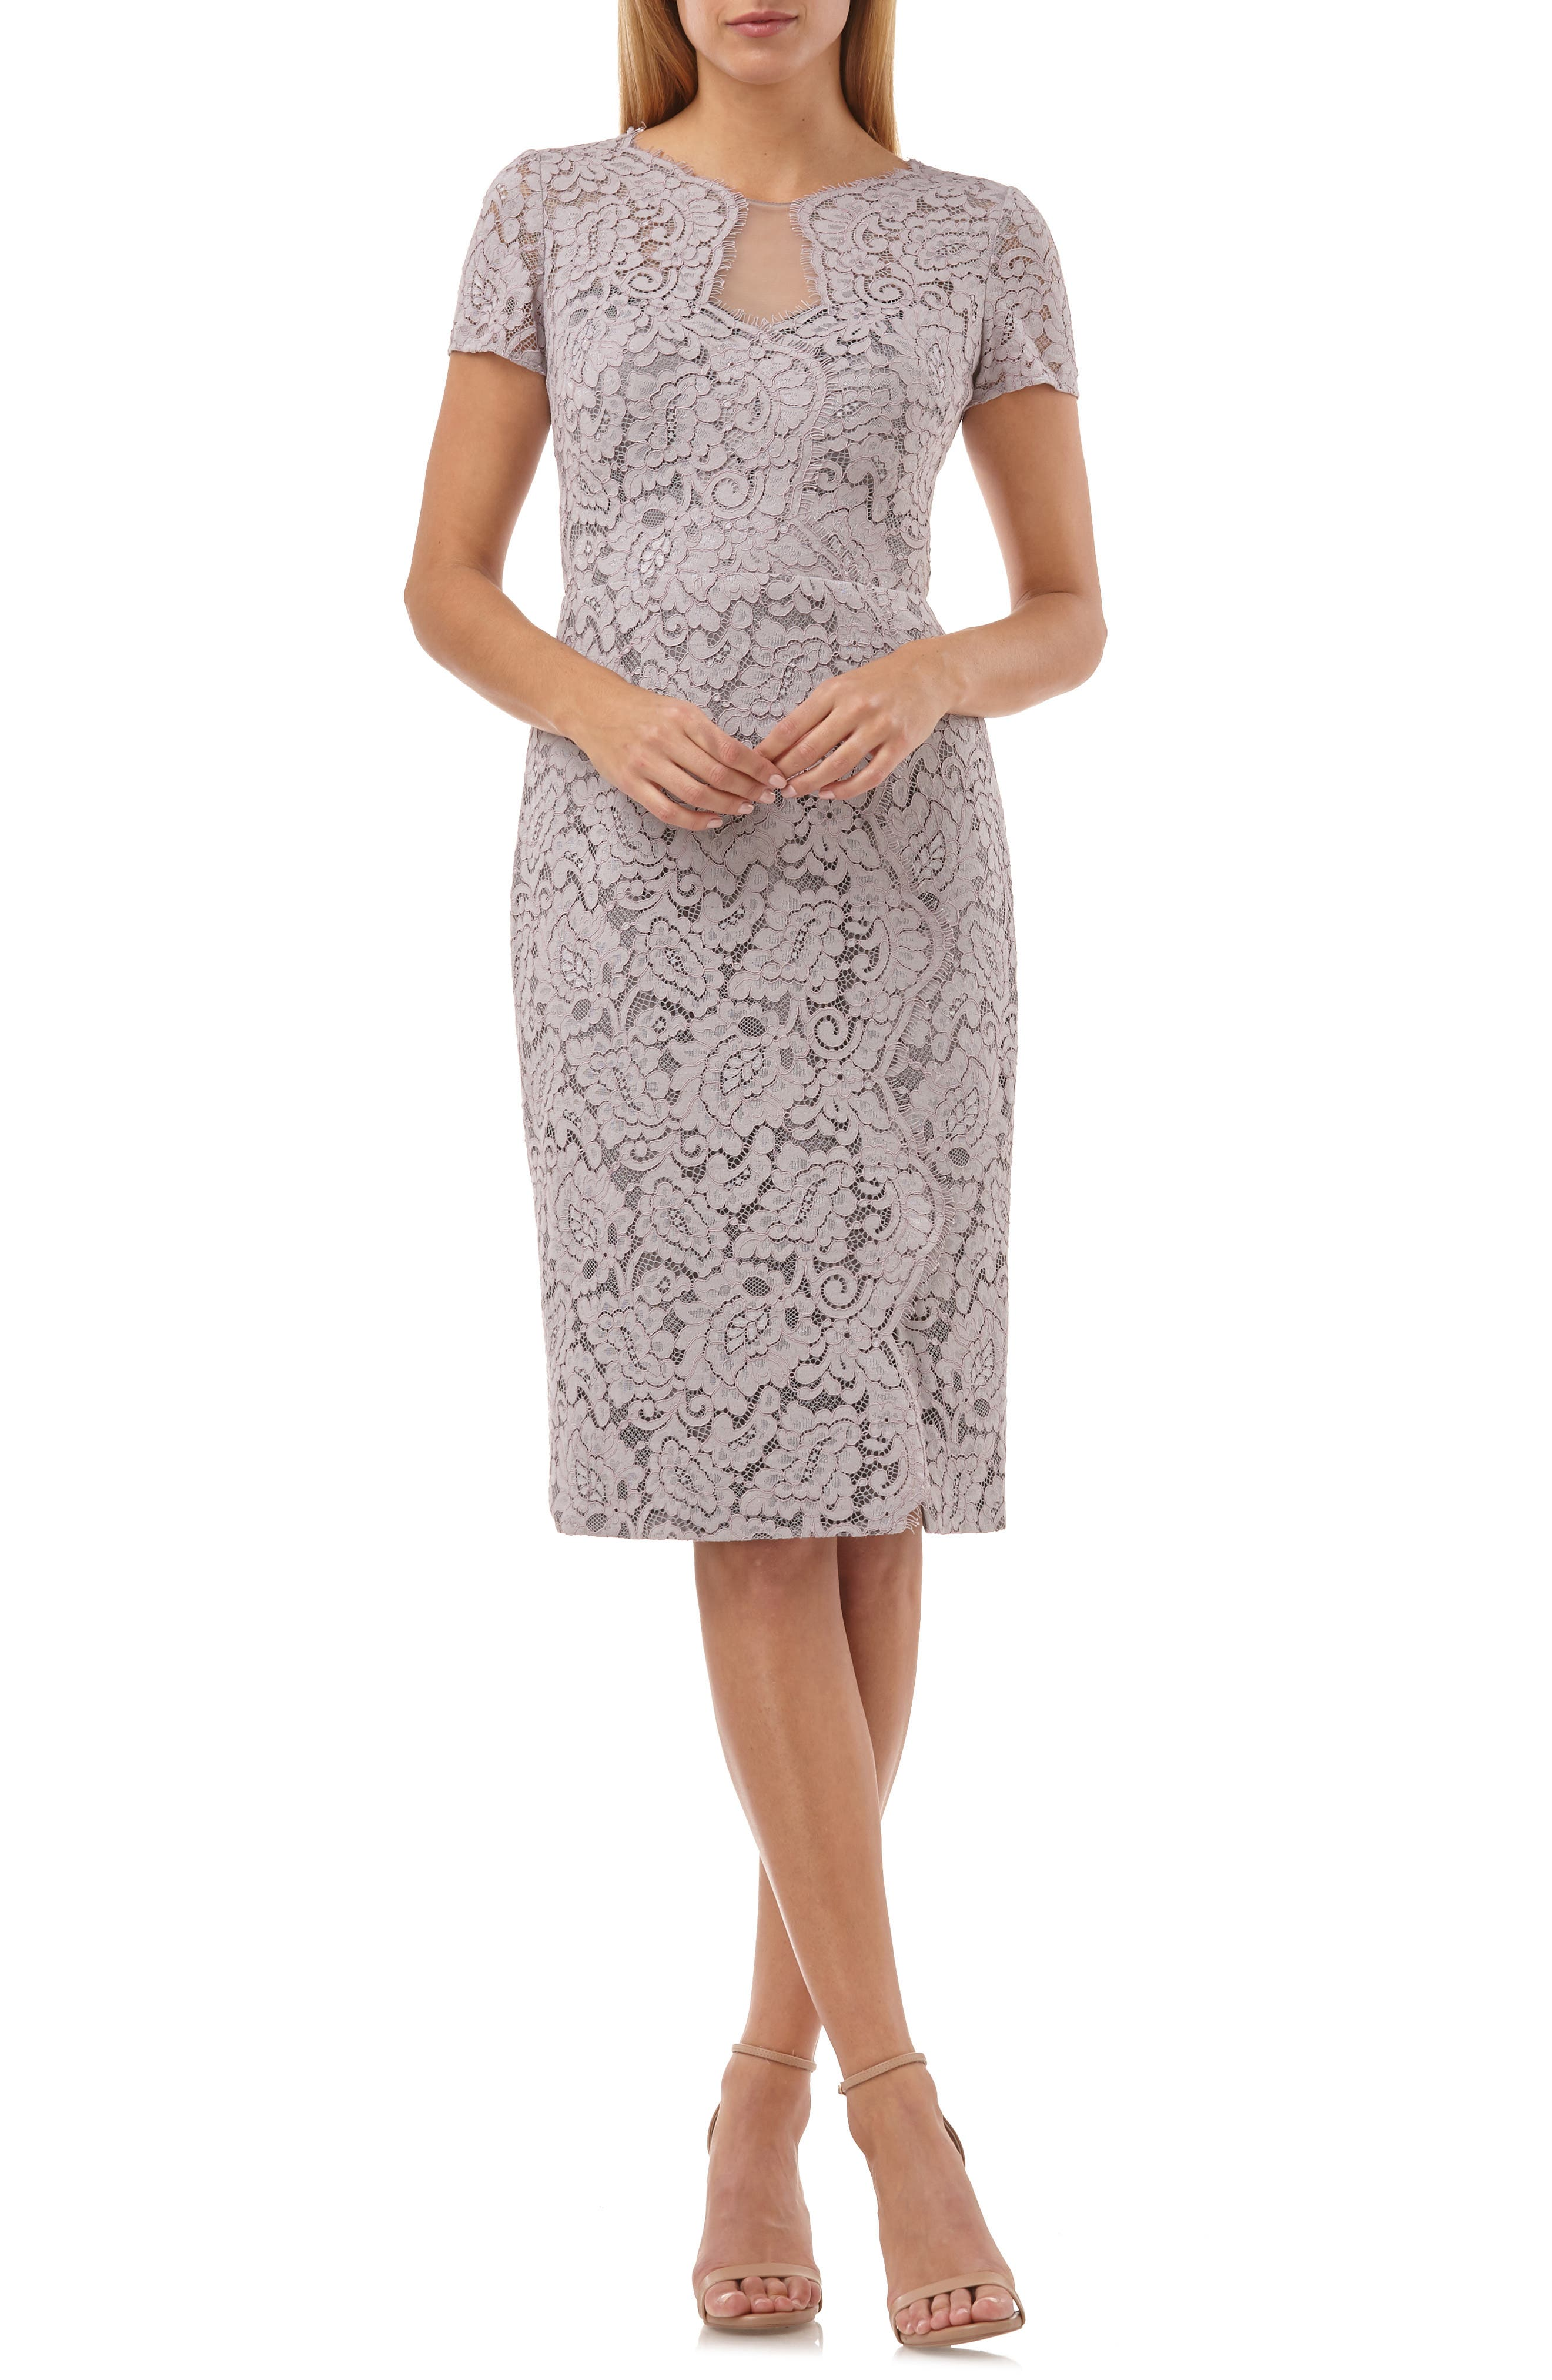 JS COLLECTIONS Lace Cocktail Dress, Main, color, TAUPE